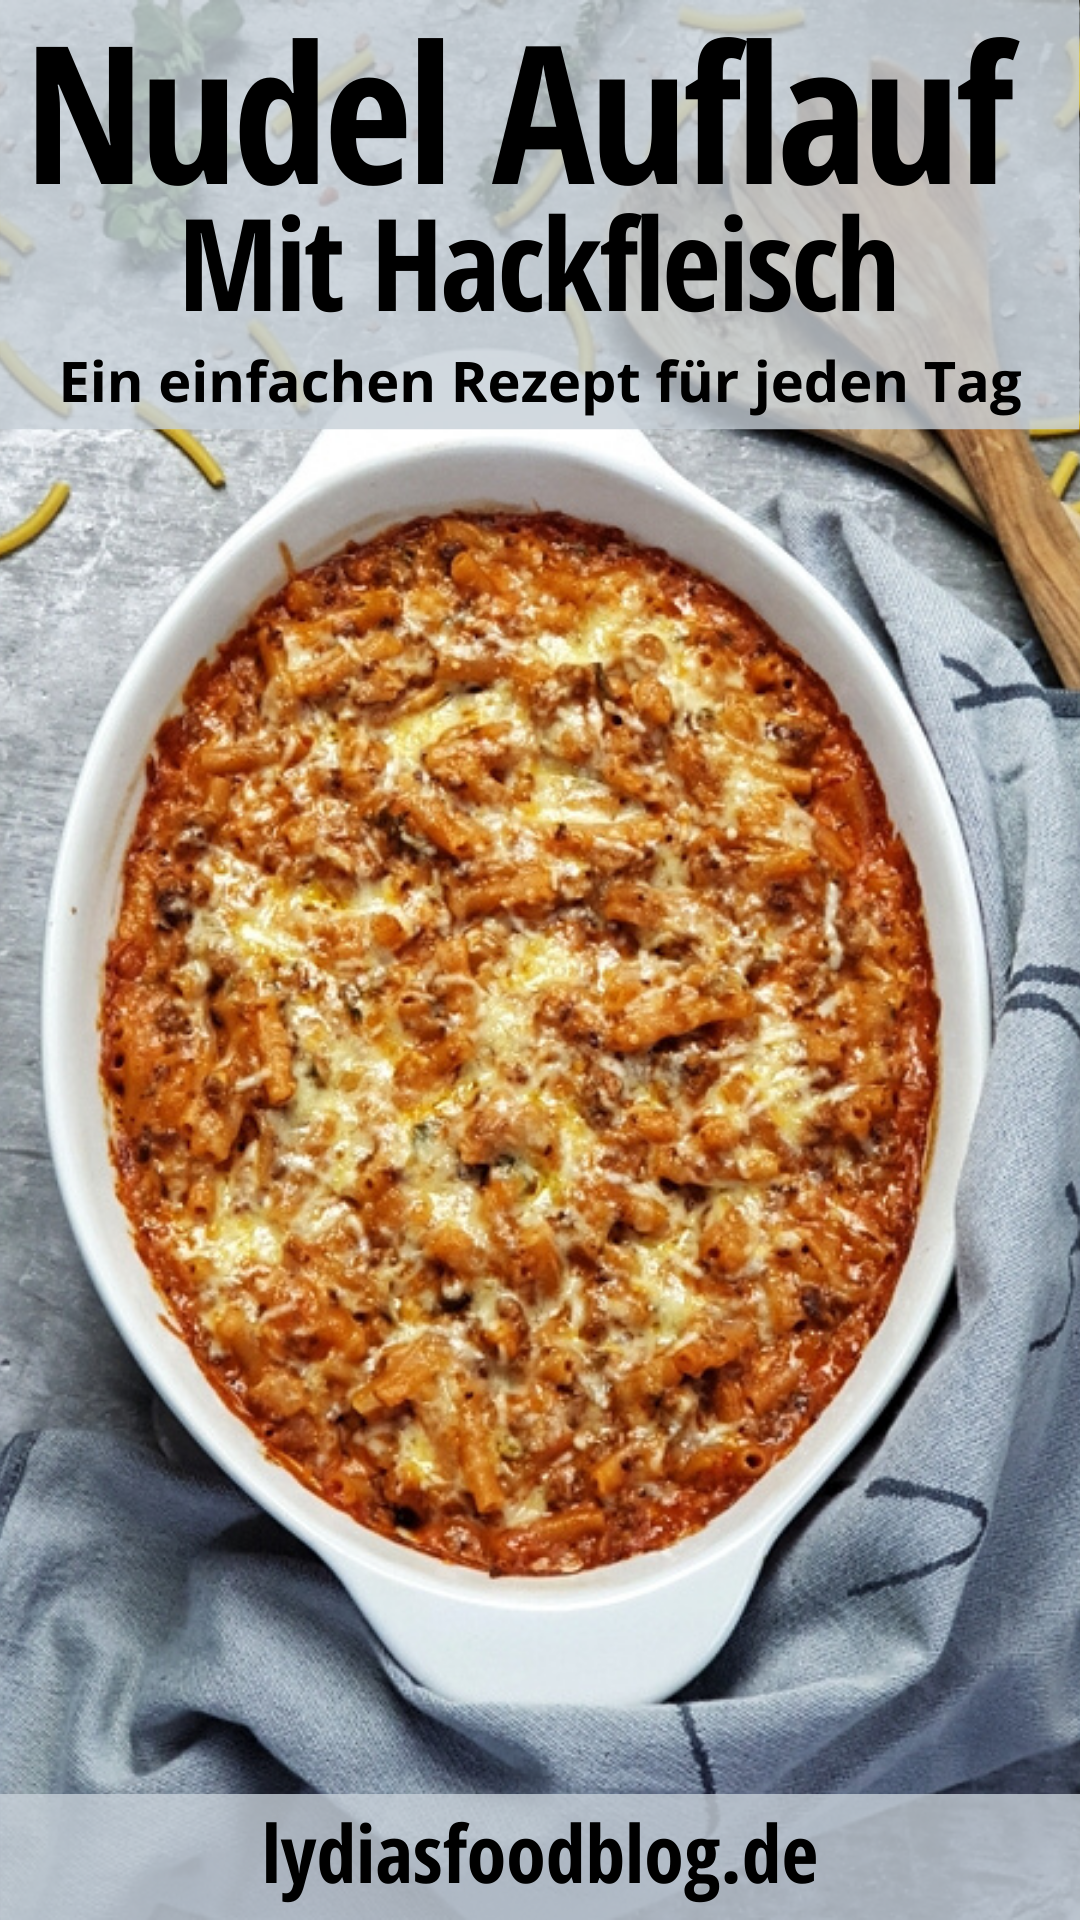 Photo of Macaroni casserole with minced meat, recipe